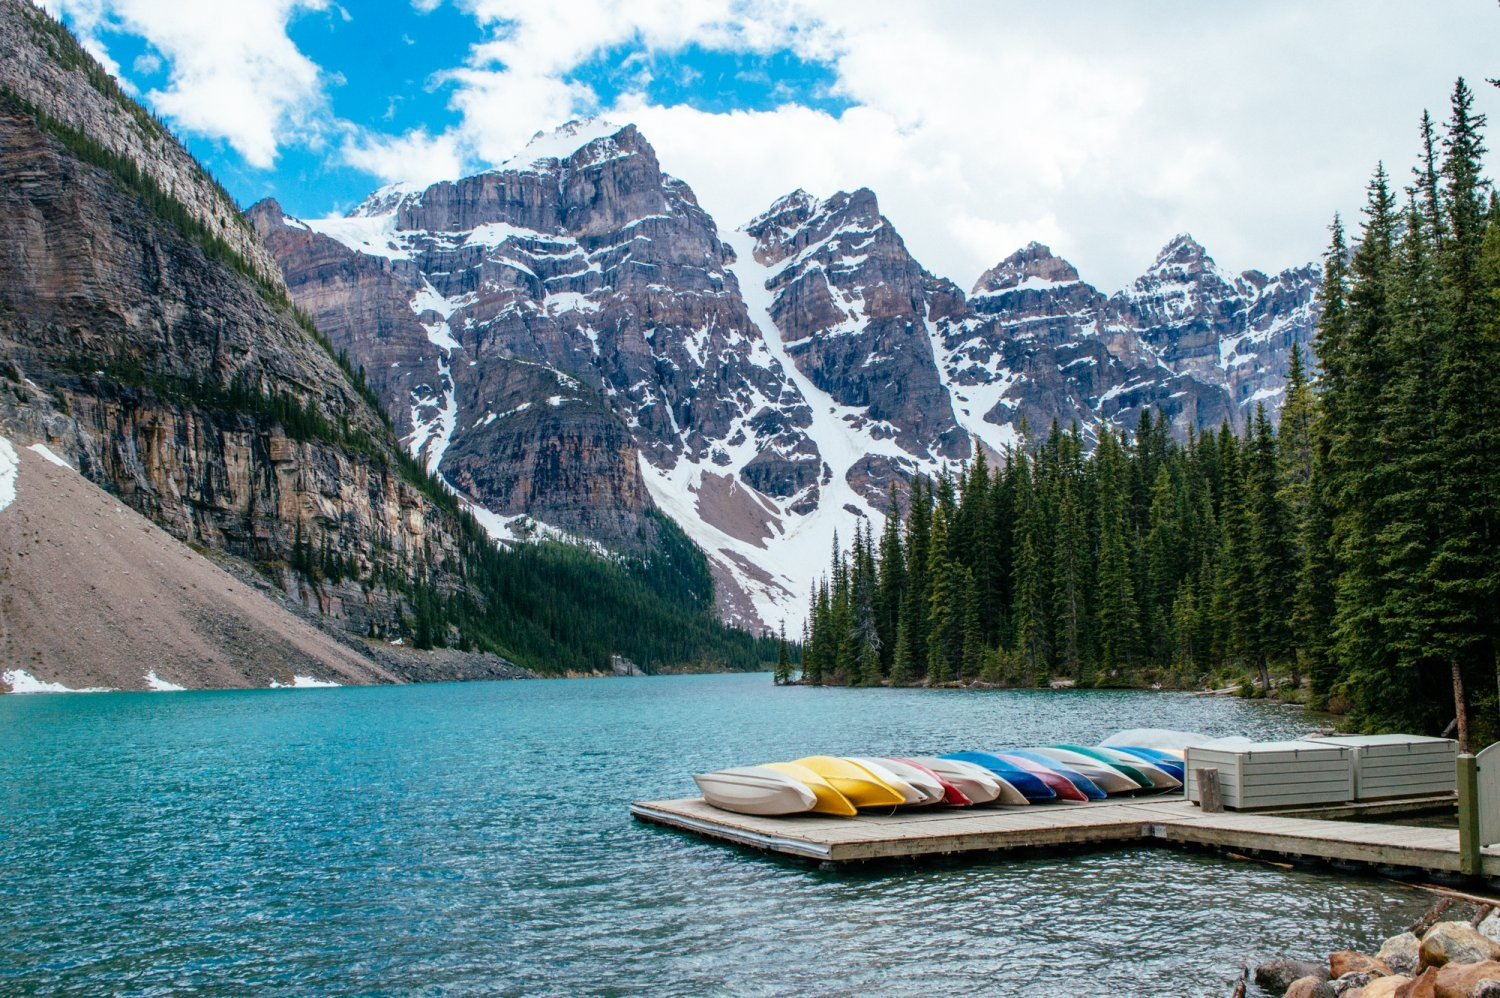 Absolutely stunning set of photos from Banff National Park in Alberta, Canada! These photo guide to Banff will have you booking a ticket immediately. Includes photos of Lake Louise, Lake Moraine, Peyto Lake and more. #Alberta #Canada #LakeLouise #PeytoLake #MoraineLake